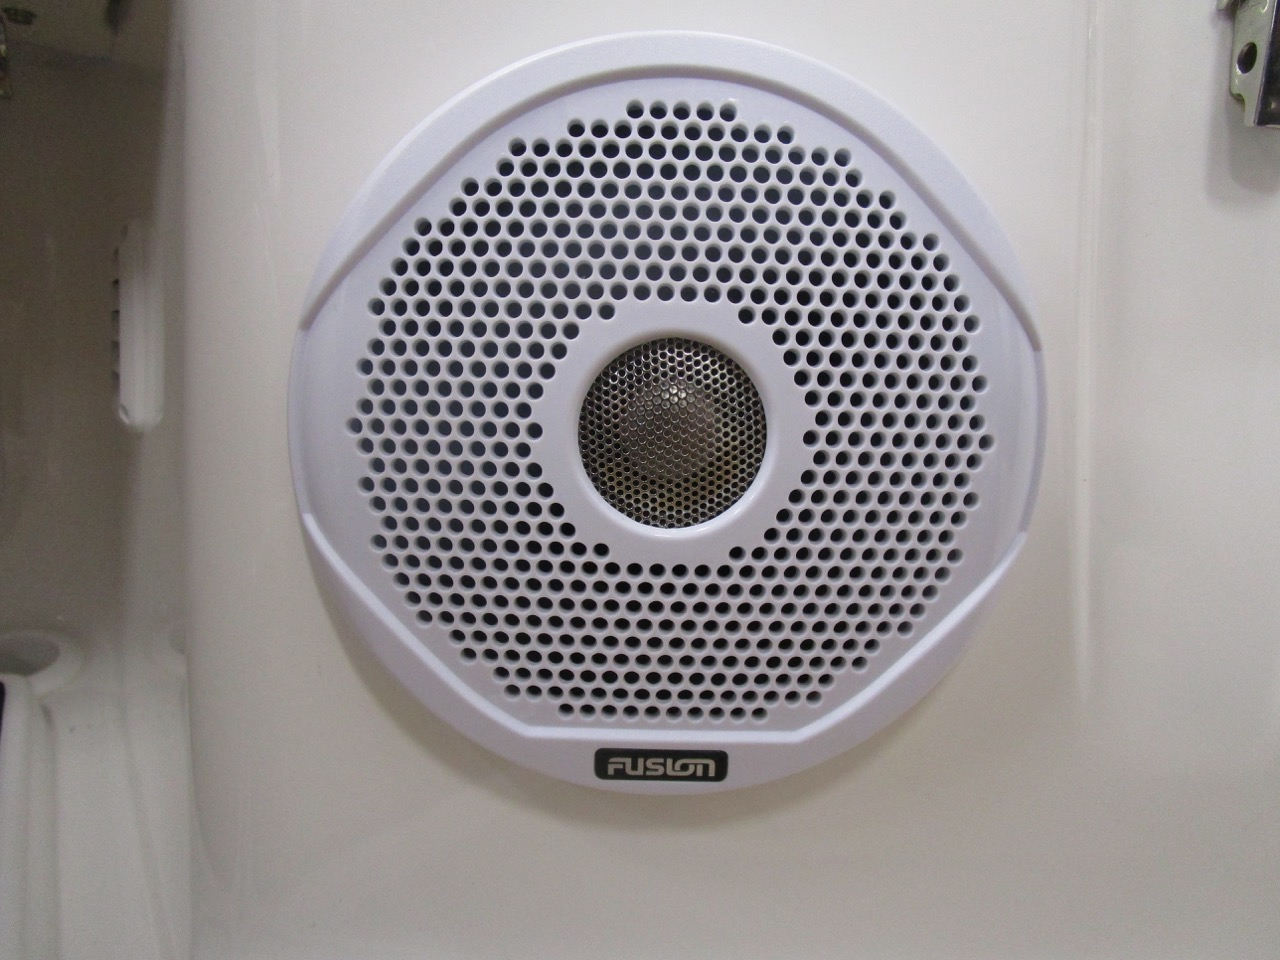 GRAND DRIVE D600 RIB one of four speakers